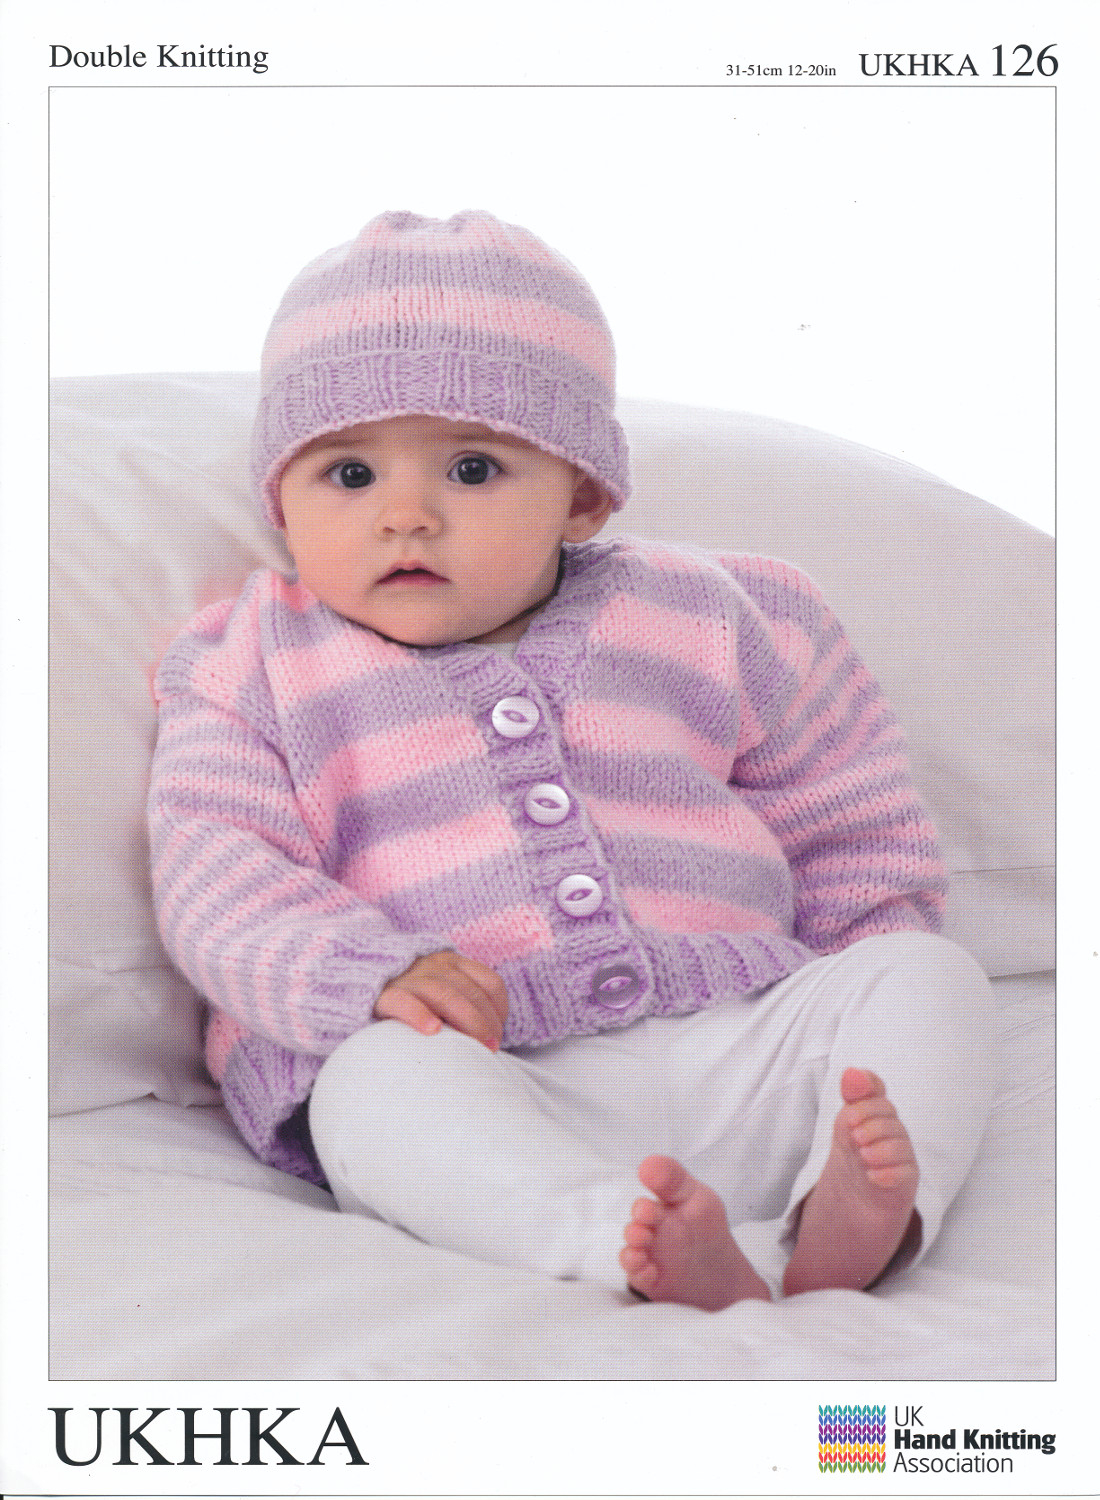 Free Double Knit Baby Cardigan Patterns Details About Double Knitting Dk Pattern Ba Long Sleeved Striped Cardigan Hat Ukhka 126